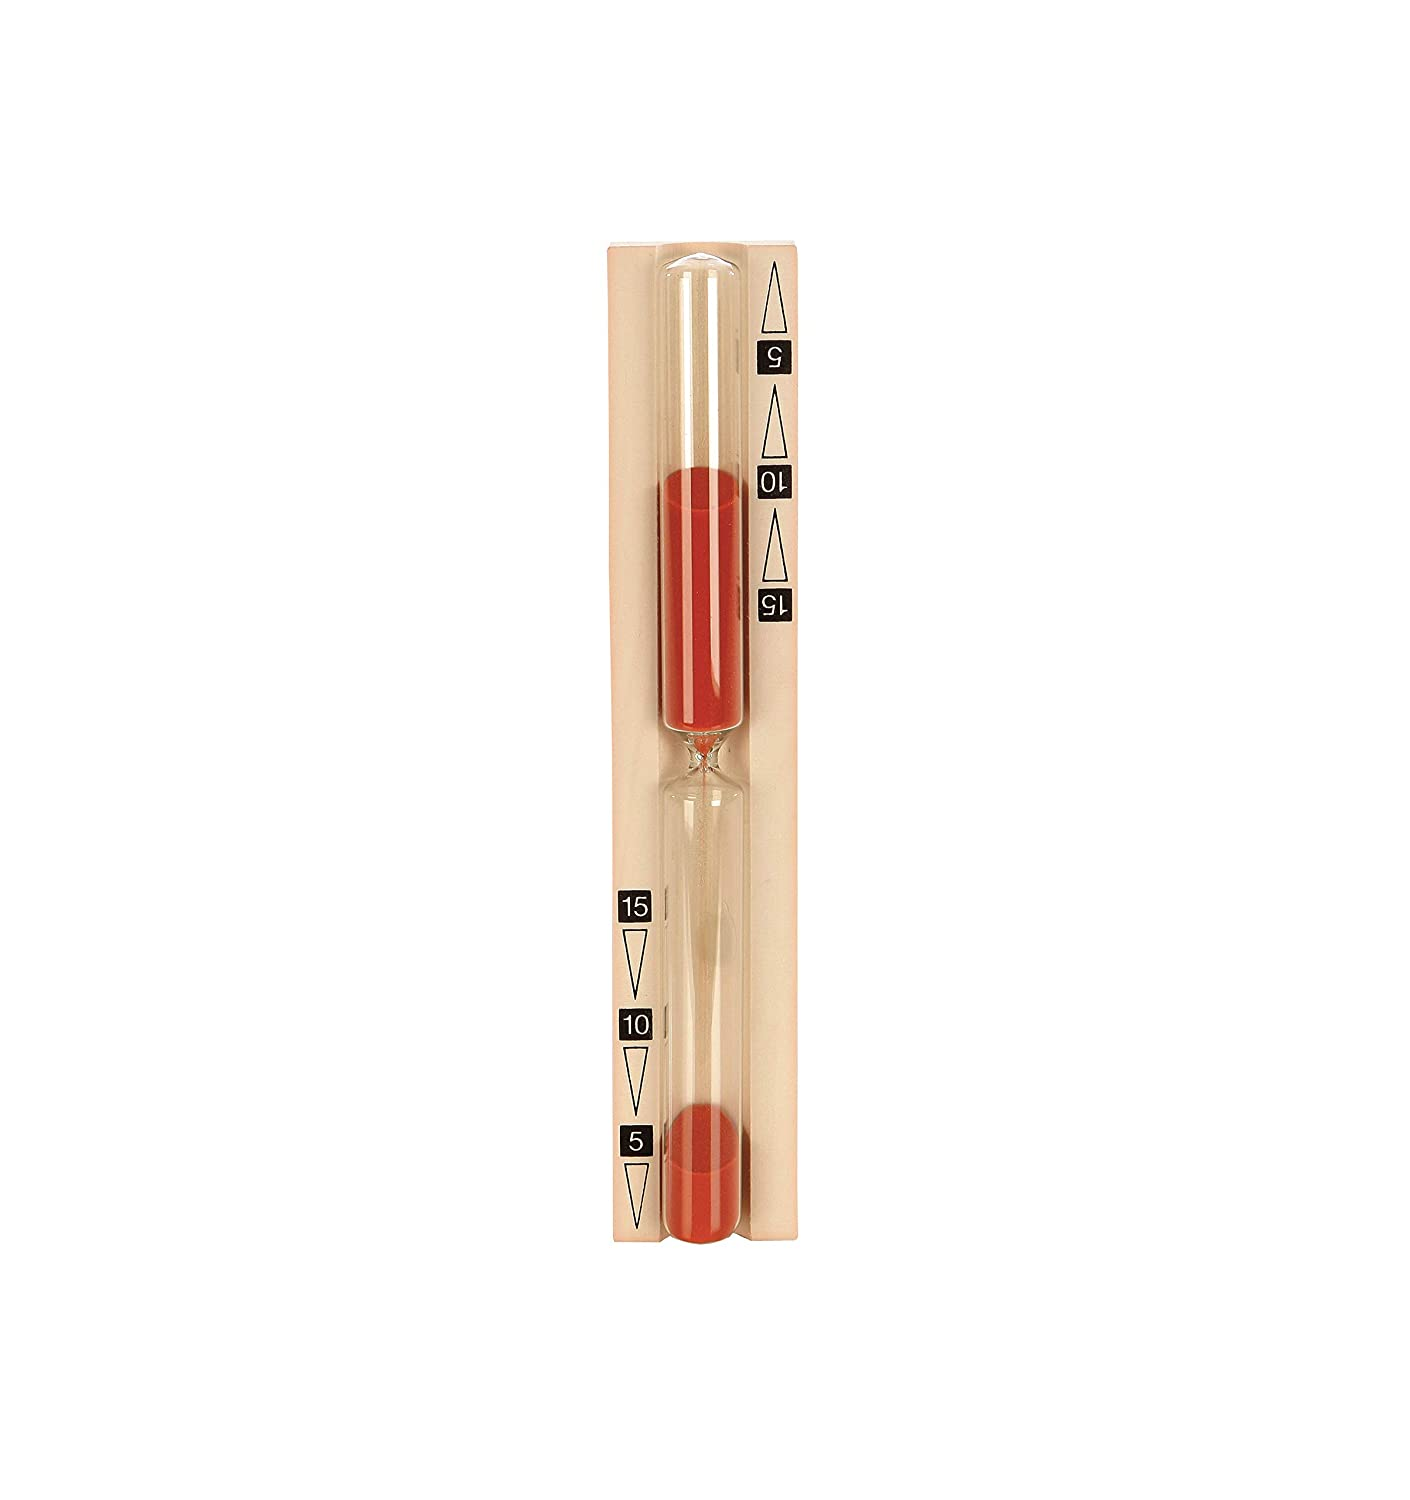 eliga Sand Timer Red Sand with Black Printed Minute Scale 833470